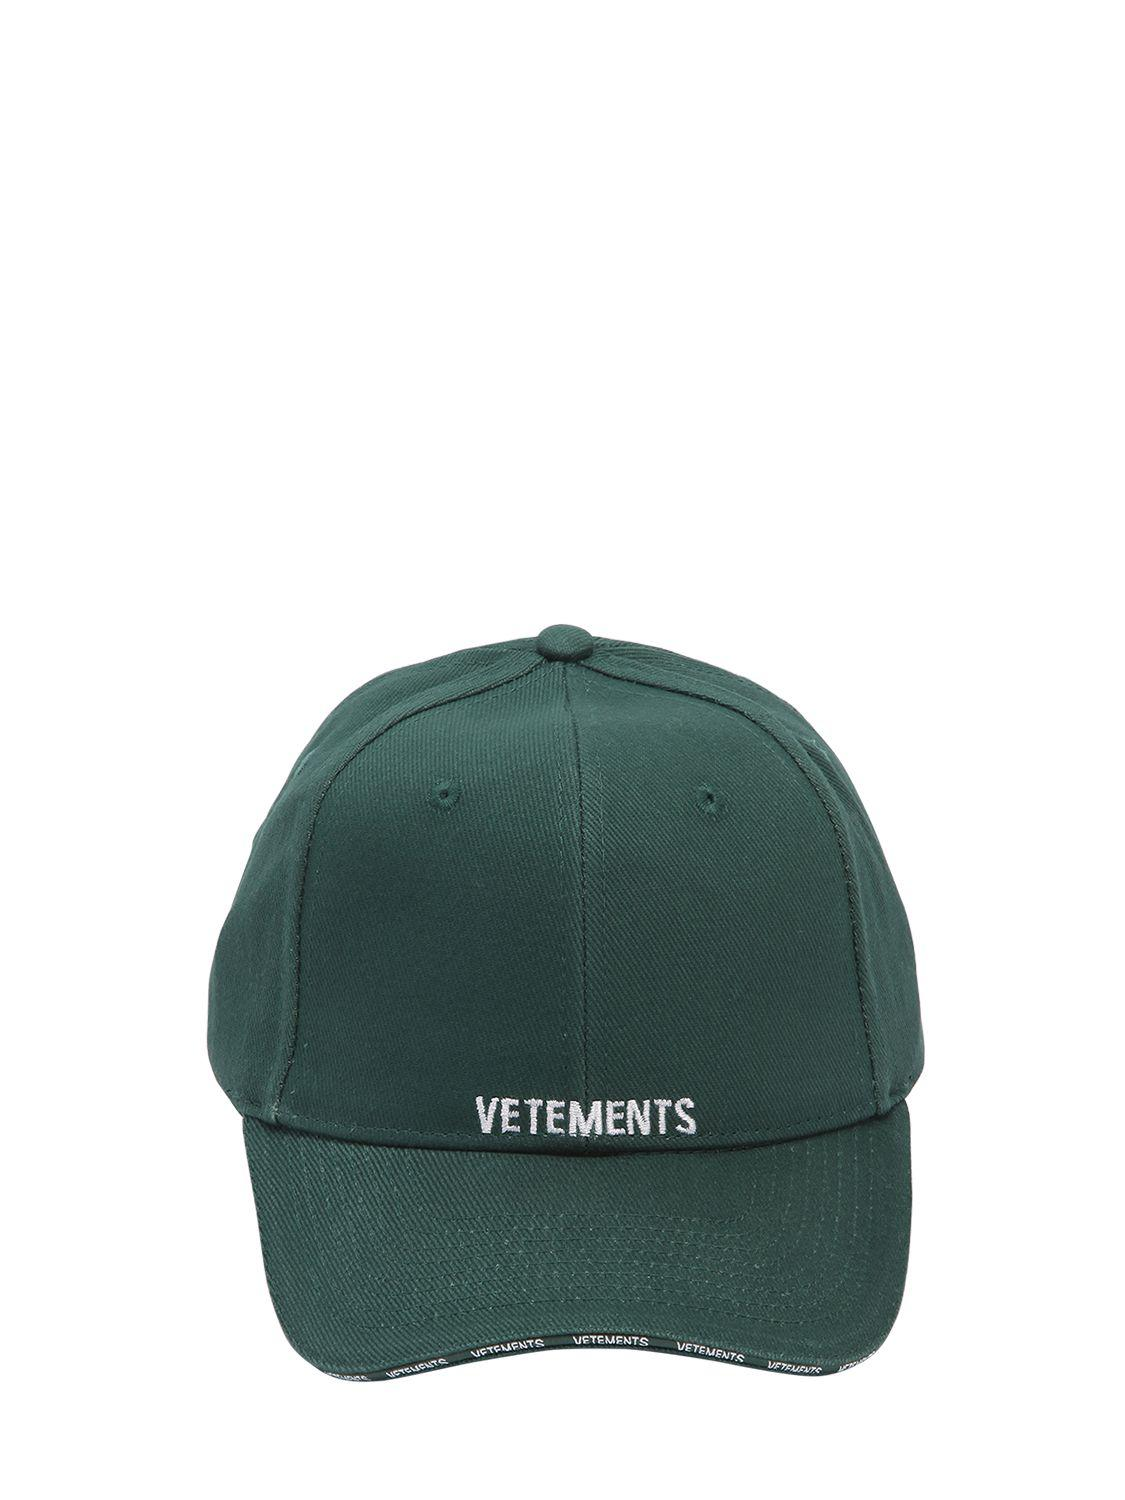 Lyst - Vetements Logo Embroidered Canvas Hat in White for Men ddfe08a4bd4b